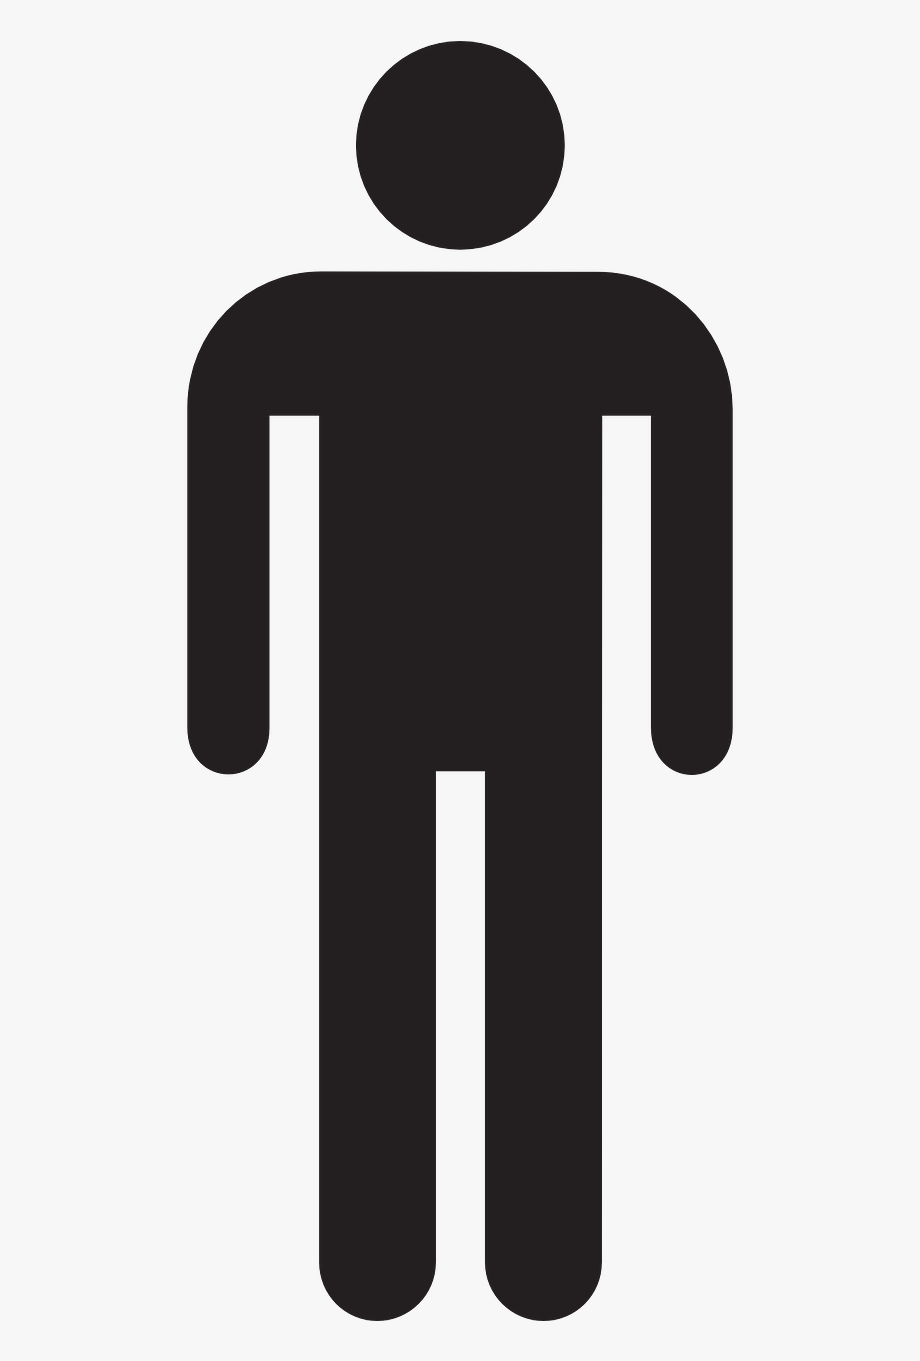 Male Man Stick Figure Symbol Png Image.